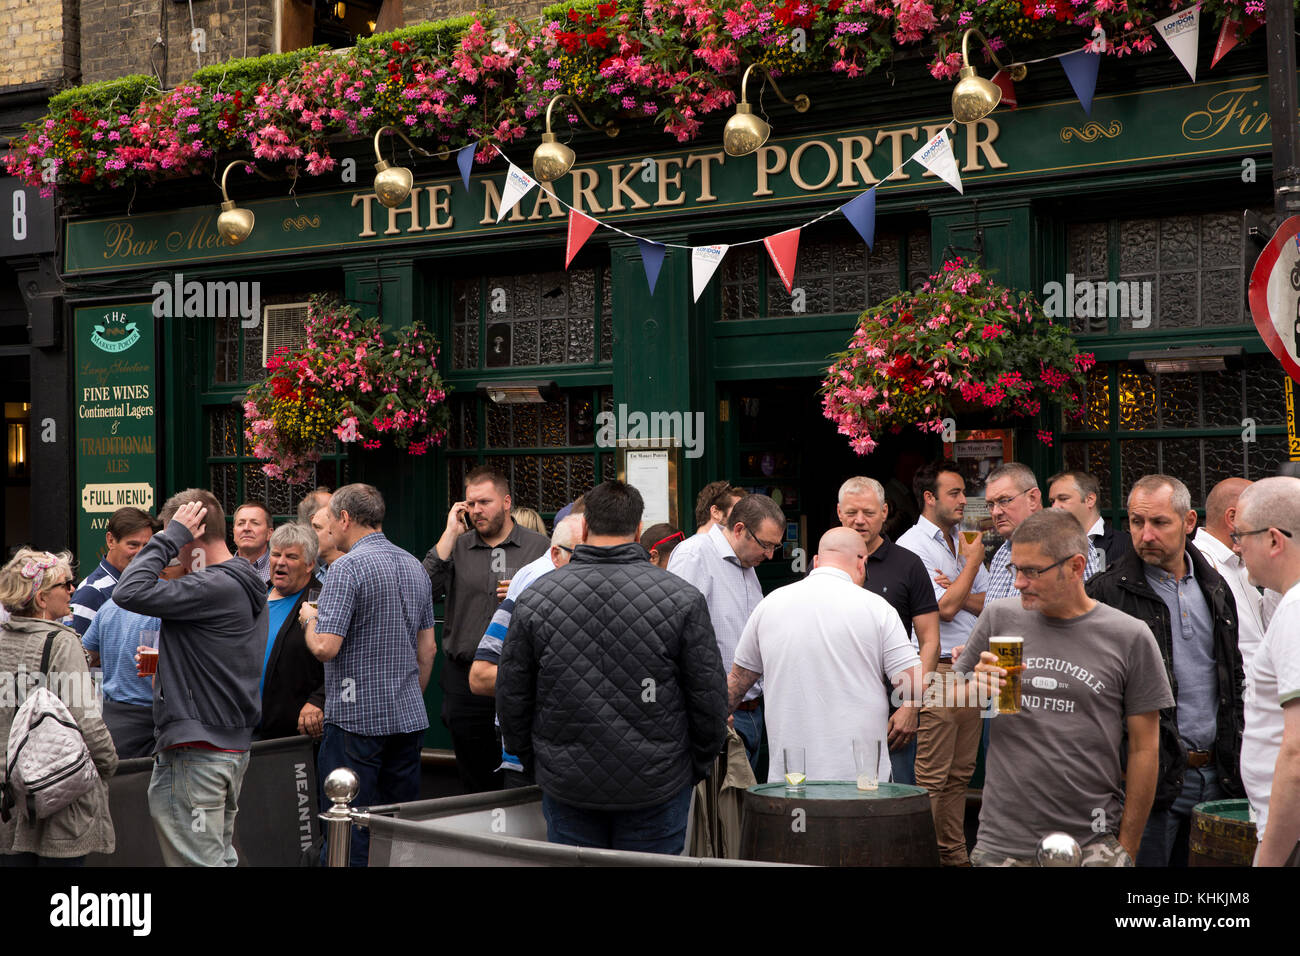 UK, London, Southwark, Stoney Street, drinkers below floral hanging baskets outside Market Porter pub - Stock Image